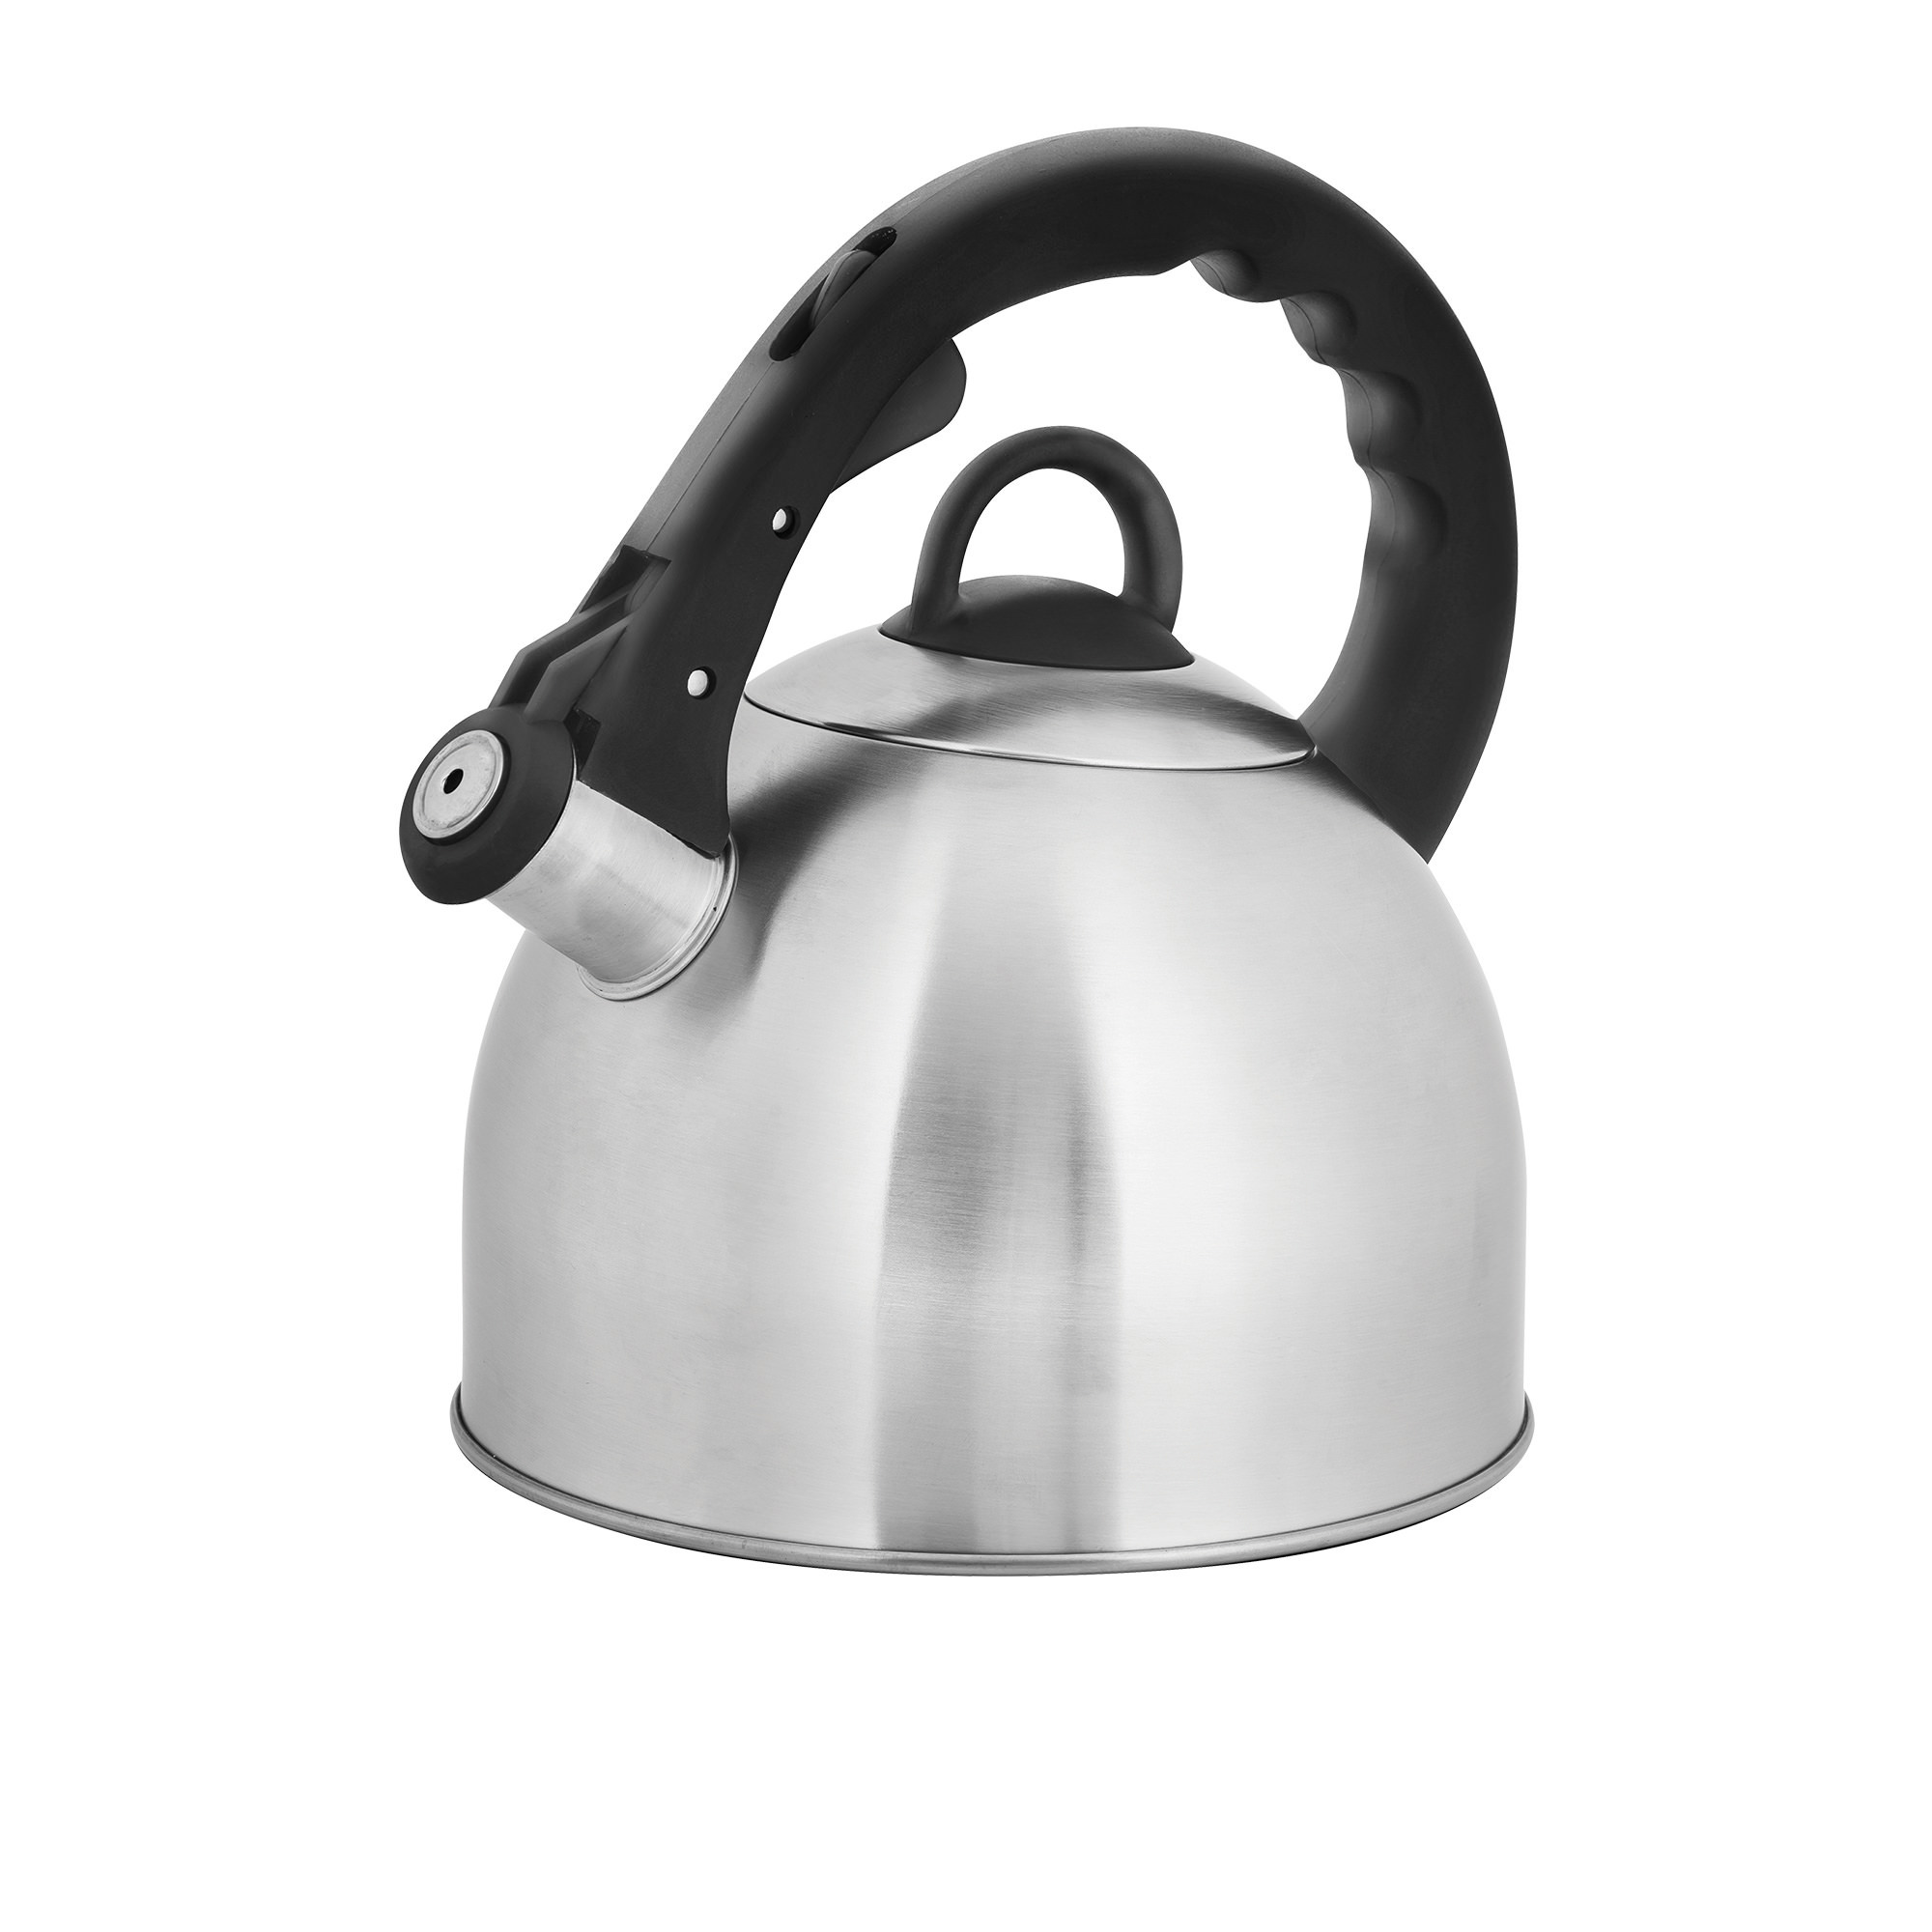 Avanti Novara Stainless Steel Whistling Kettle 2.5L